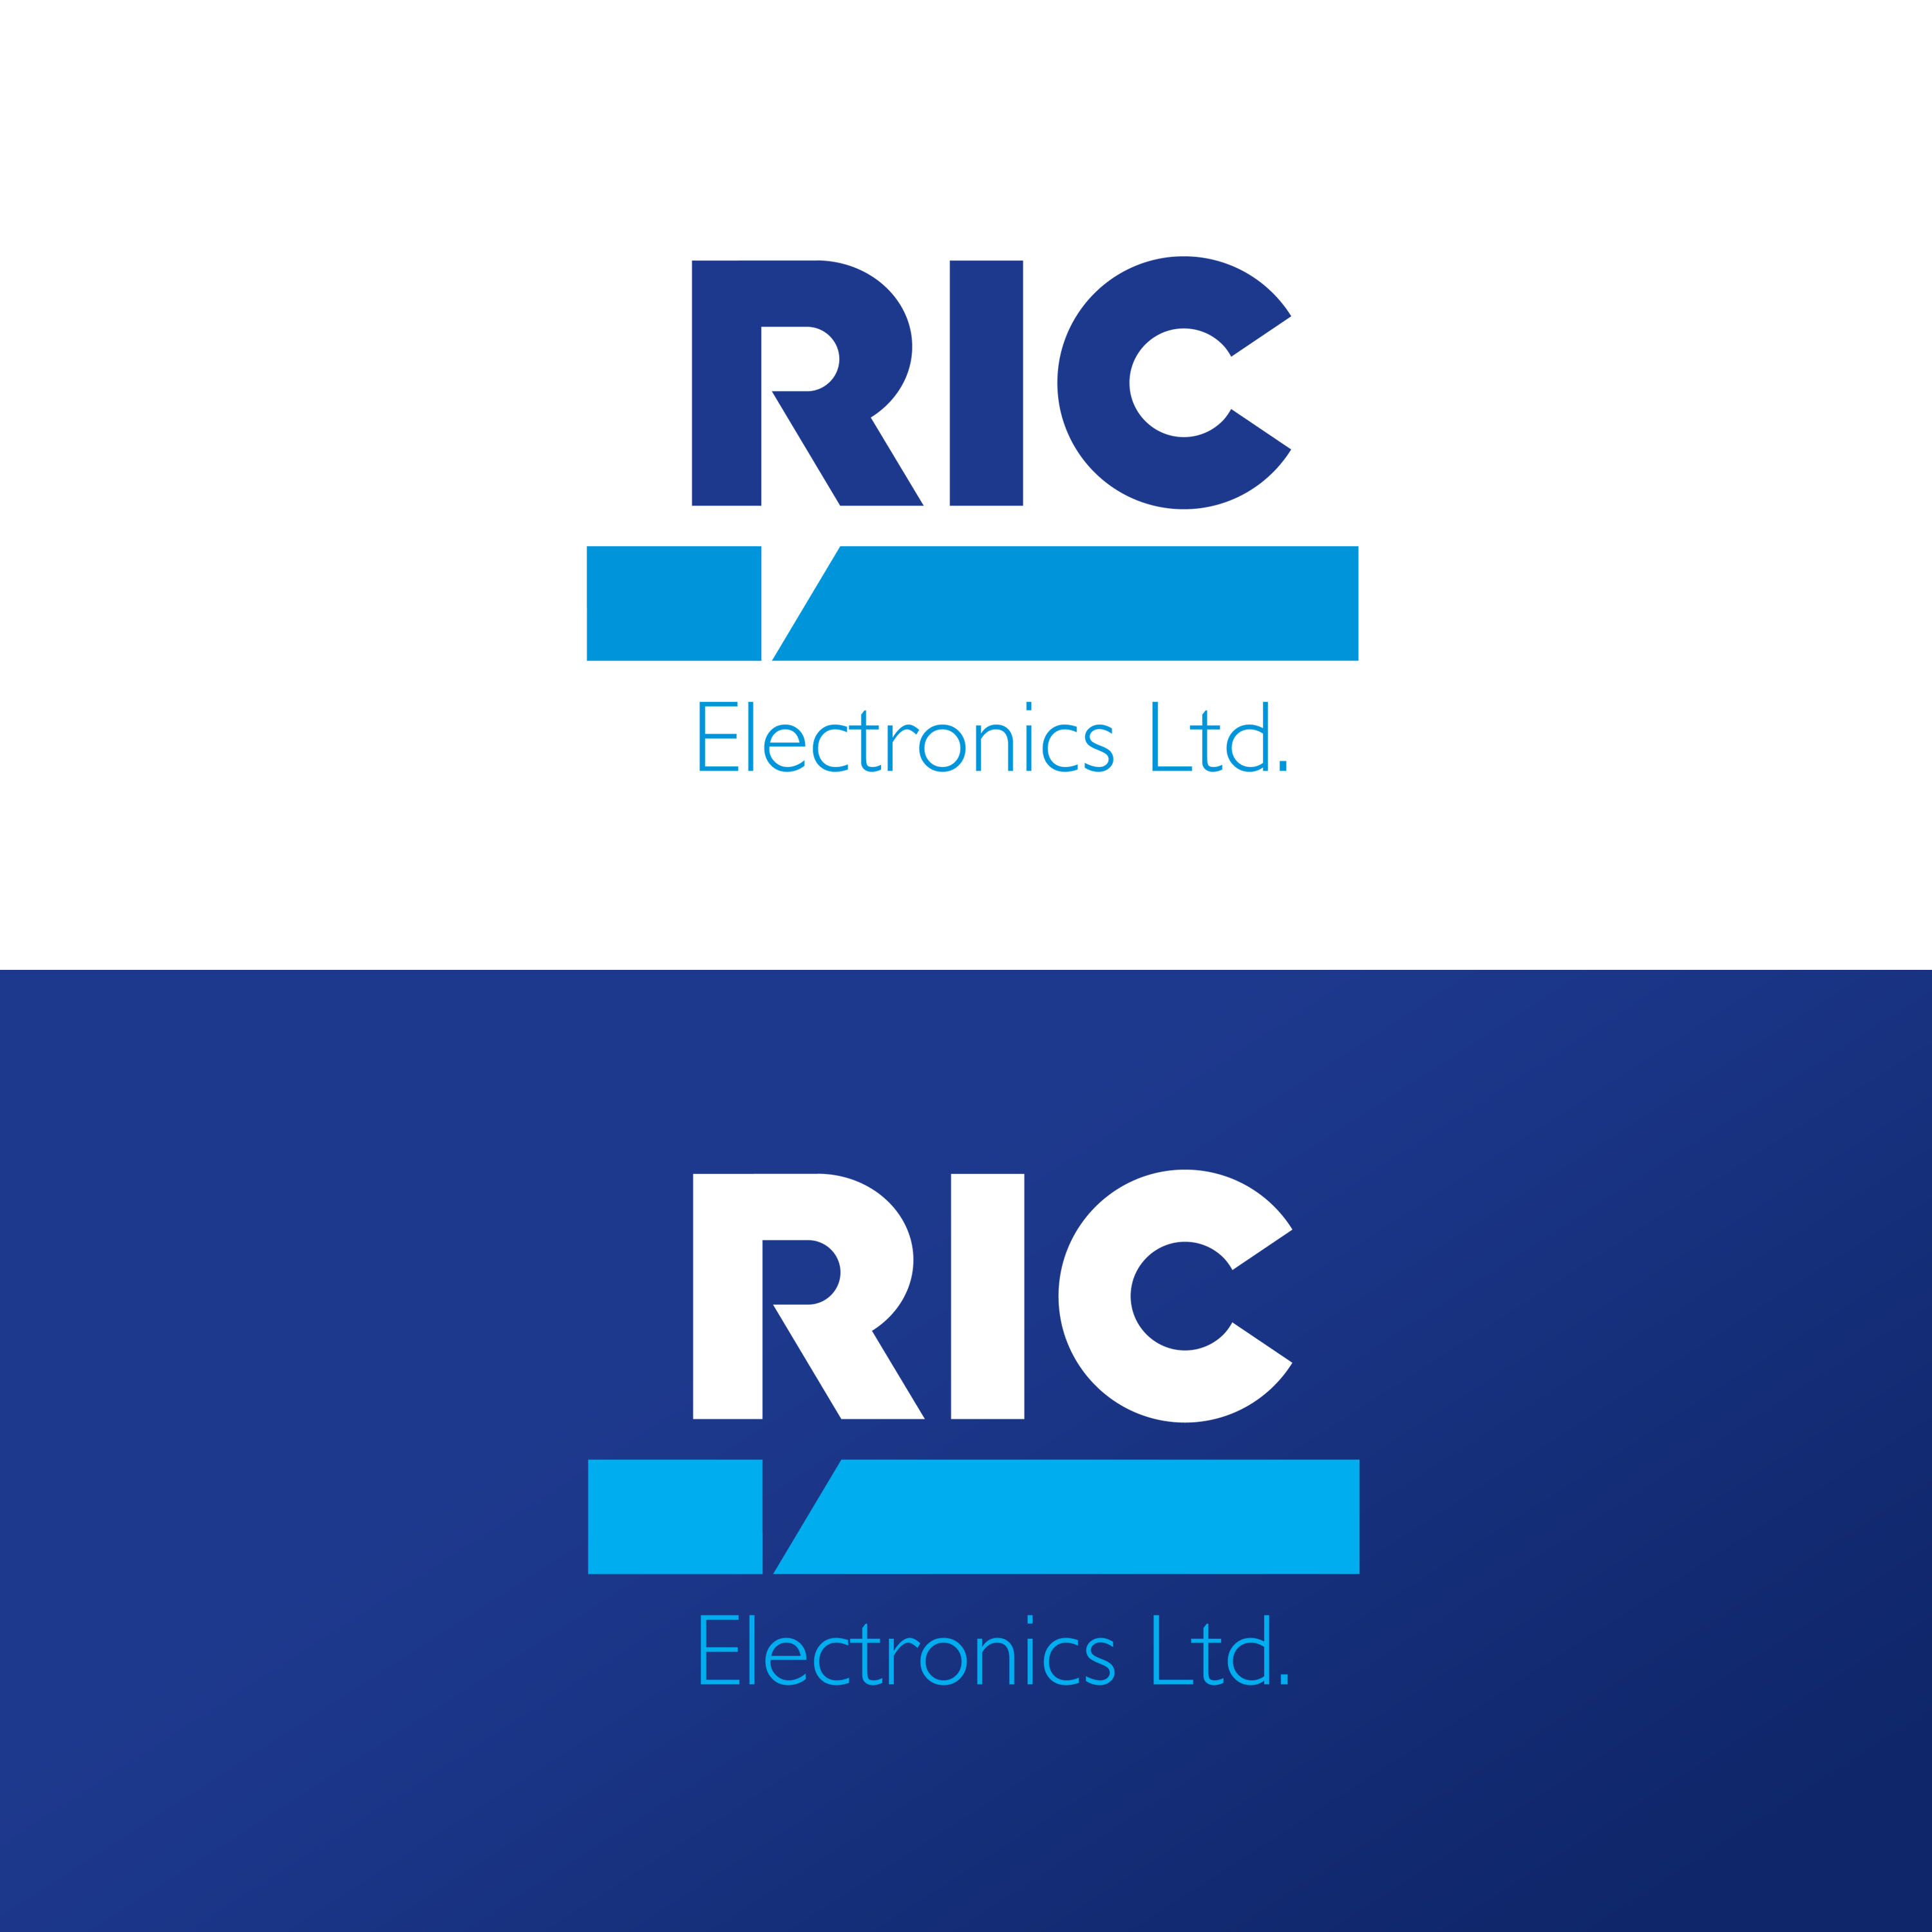 Logo Design by ARTUR PALKA - Entry No. 94 in the Logo Design Contest New Logo Design for RIC Electronics Ltd..